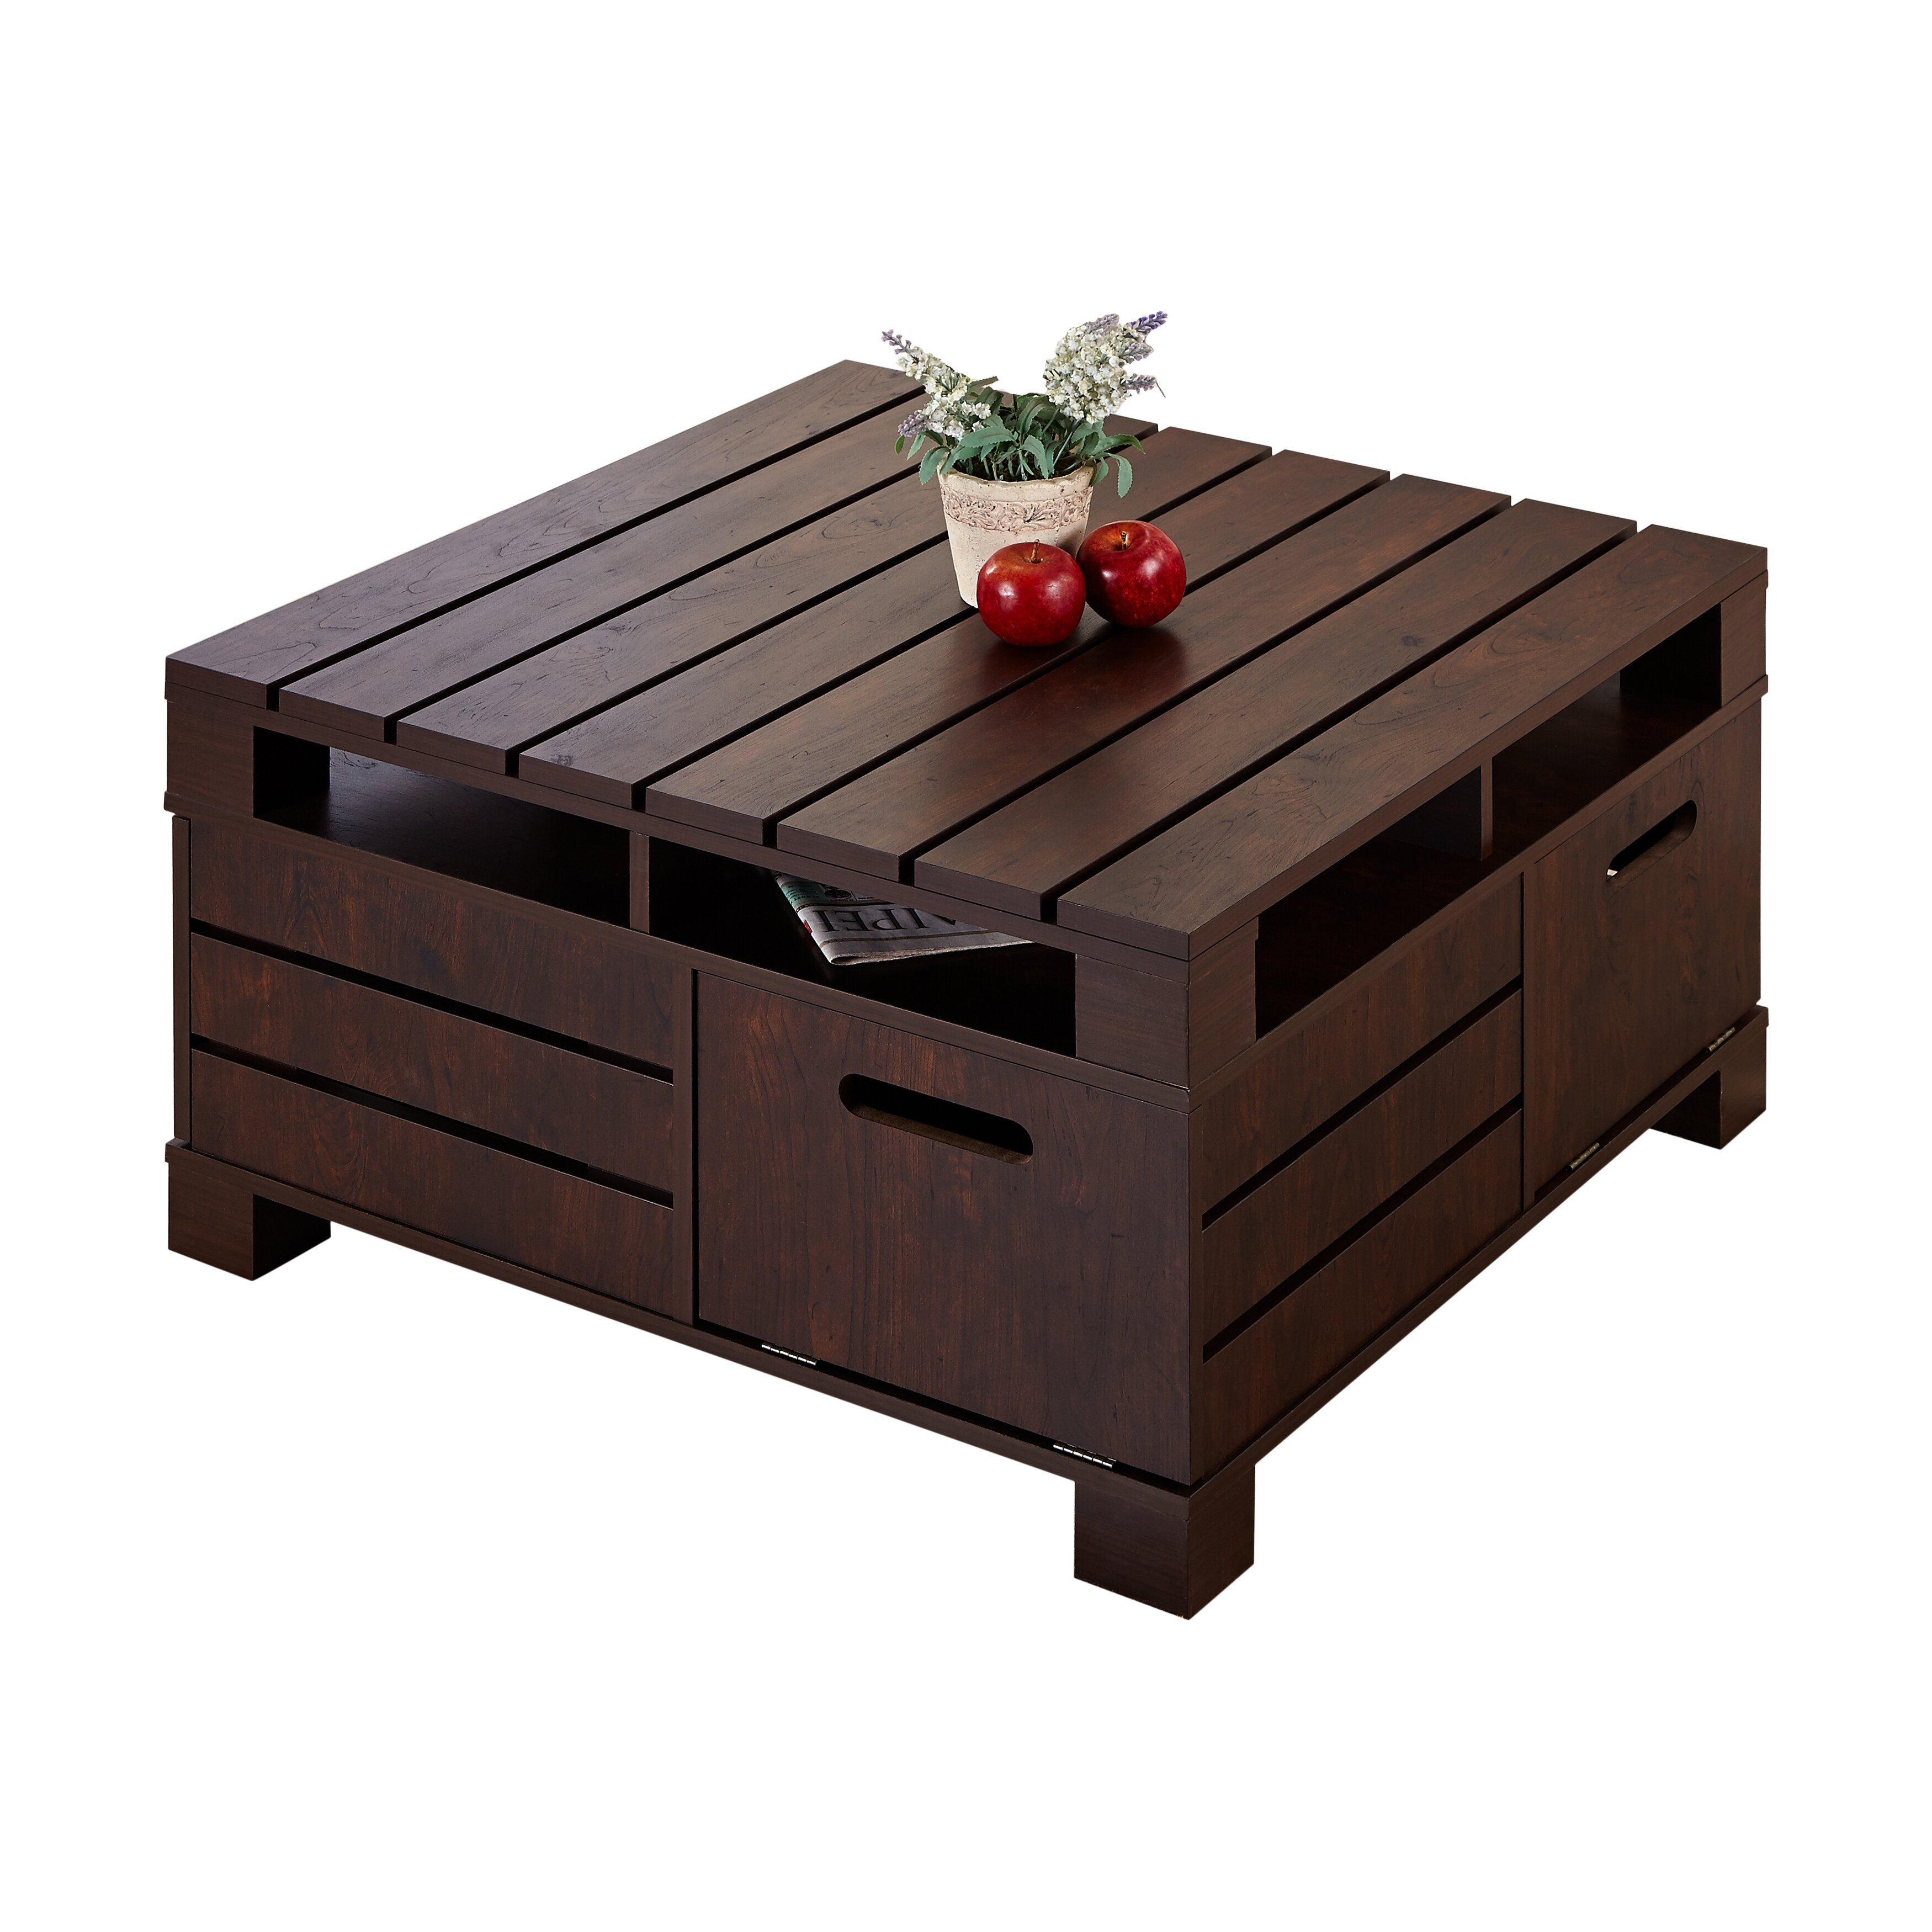 Hokku designs pallet coffee table reviews wayfairca for Wayfair outdoor coffee table